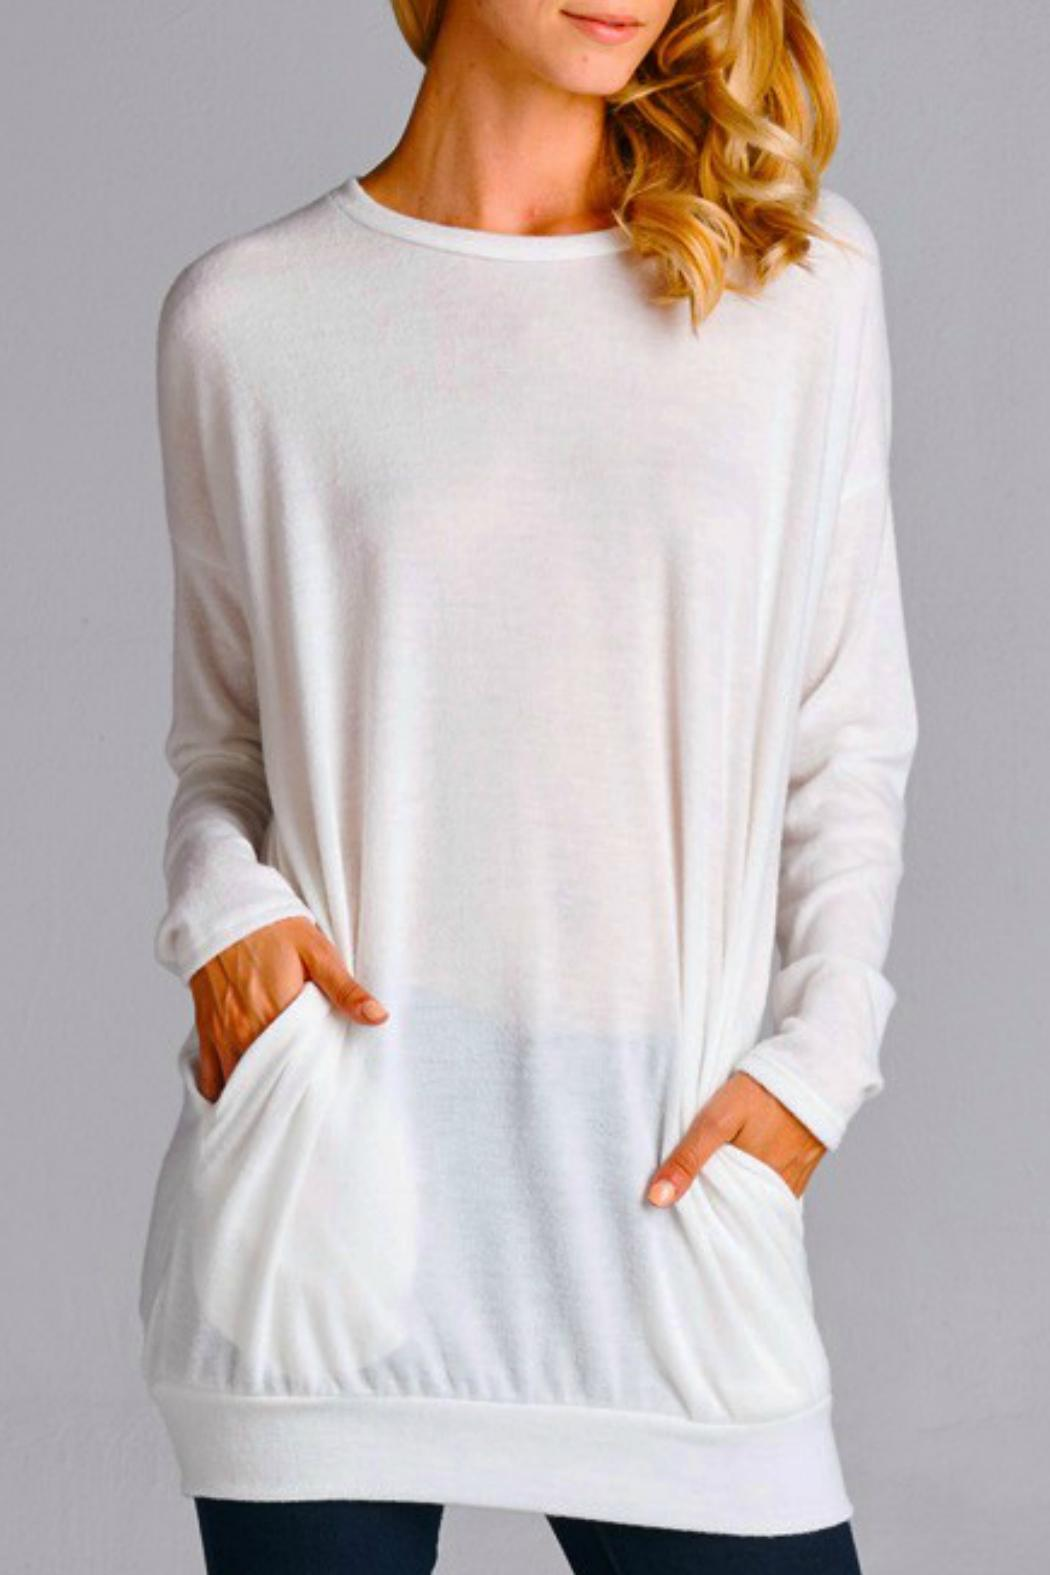 Cherish Cozy Tunic Sweater from San Diego by Laundry — Shoptiques